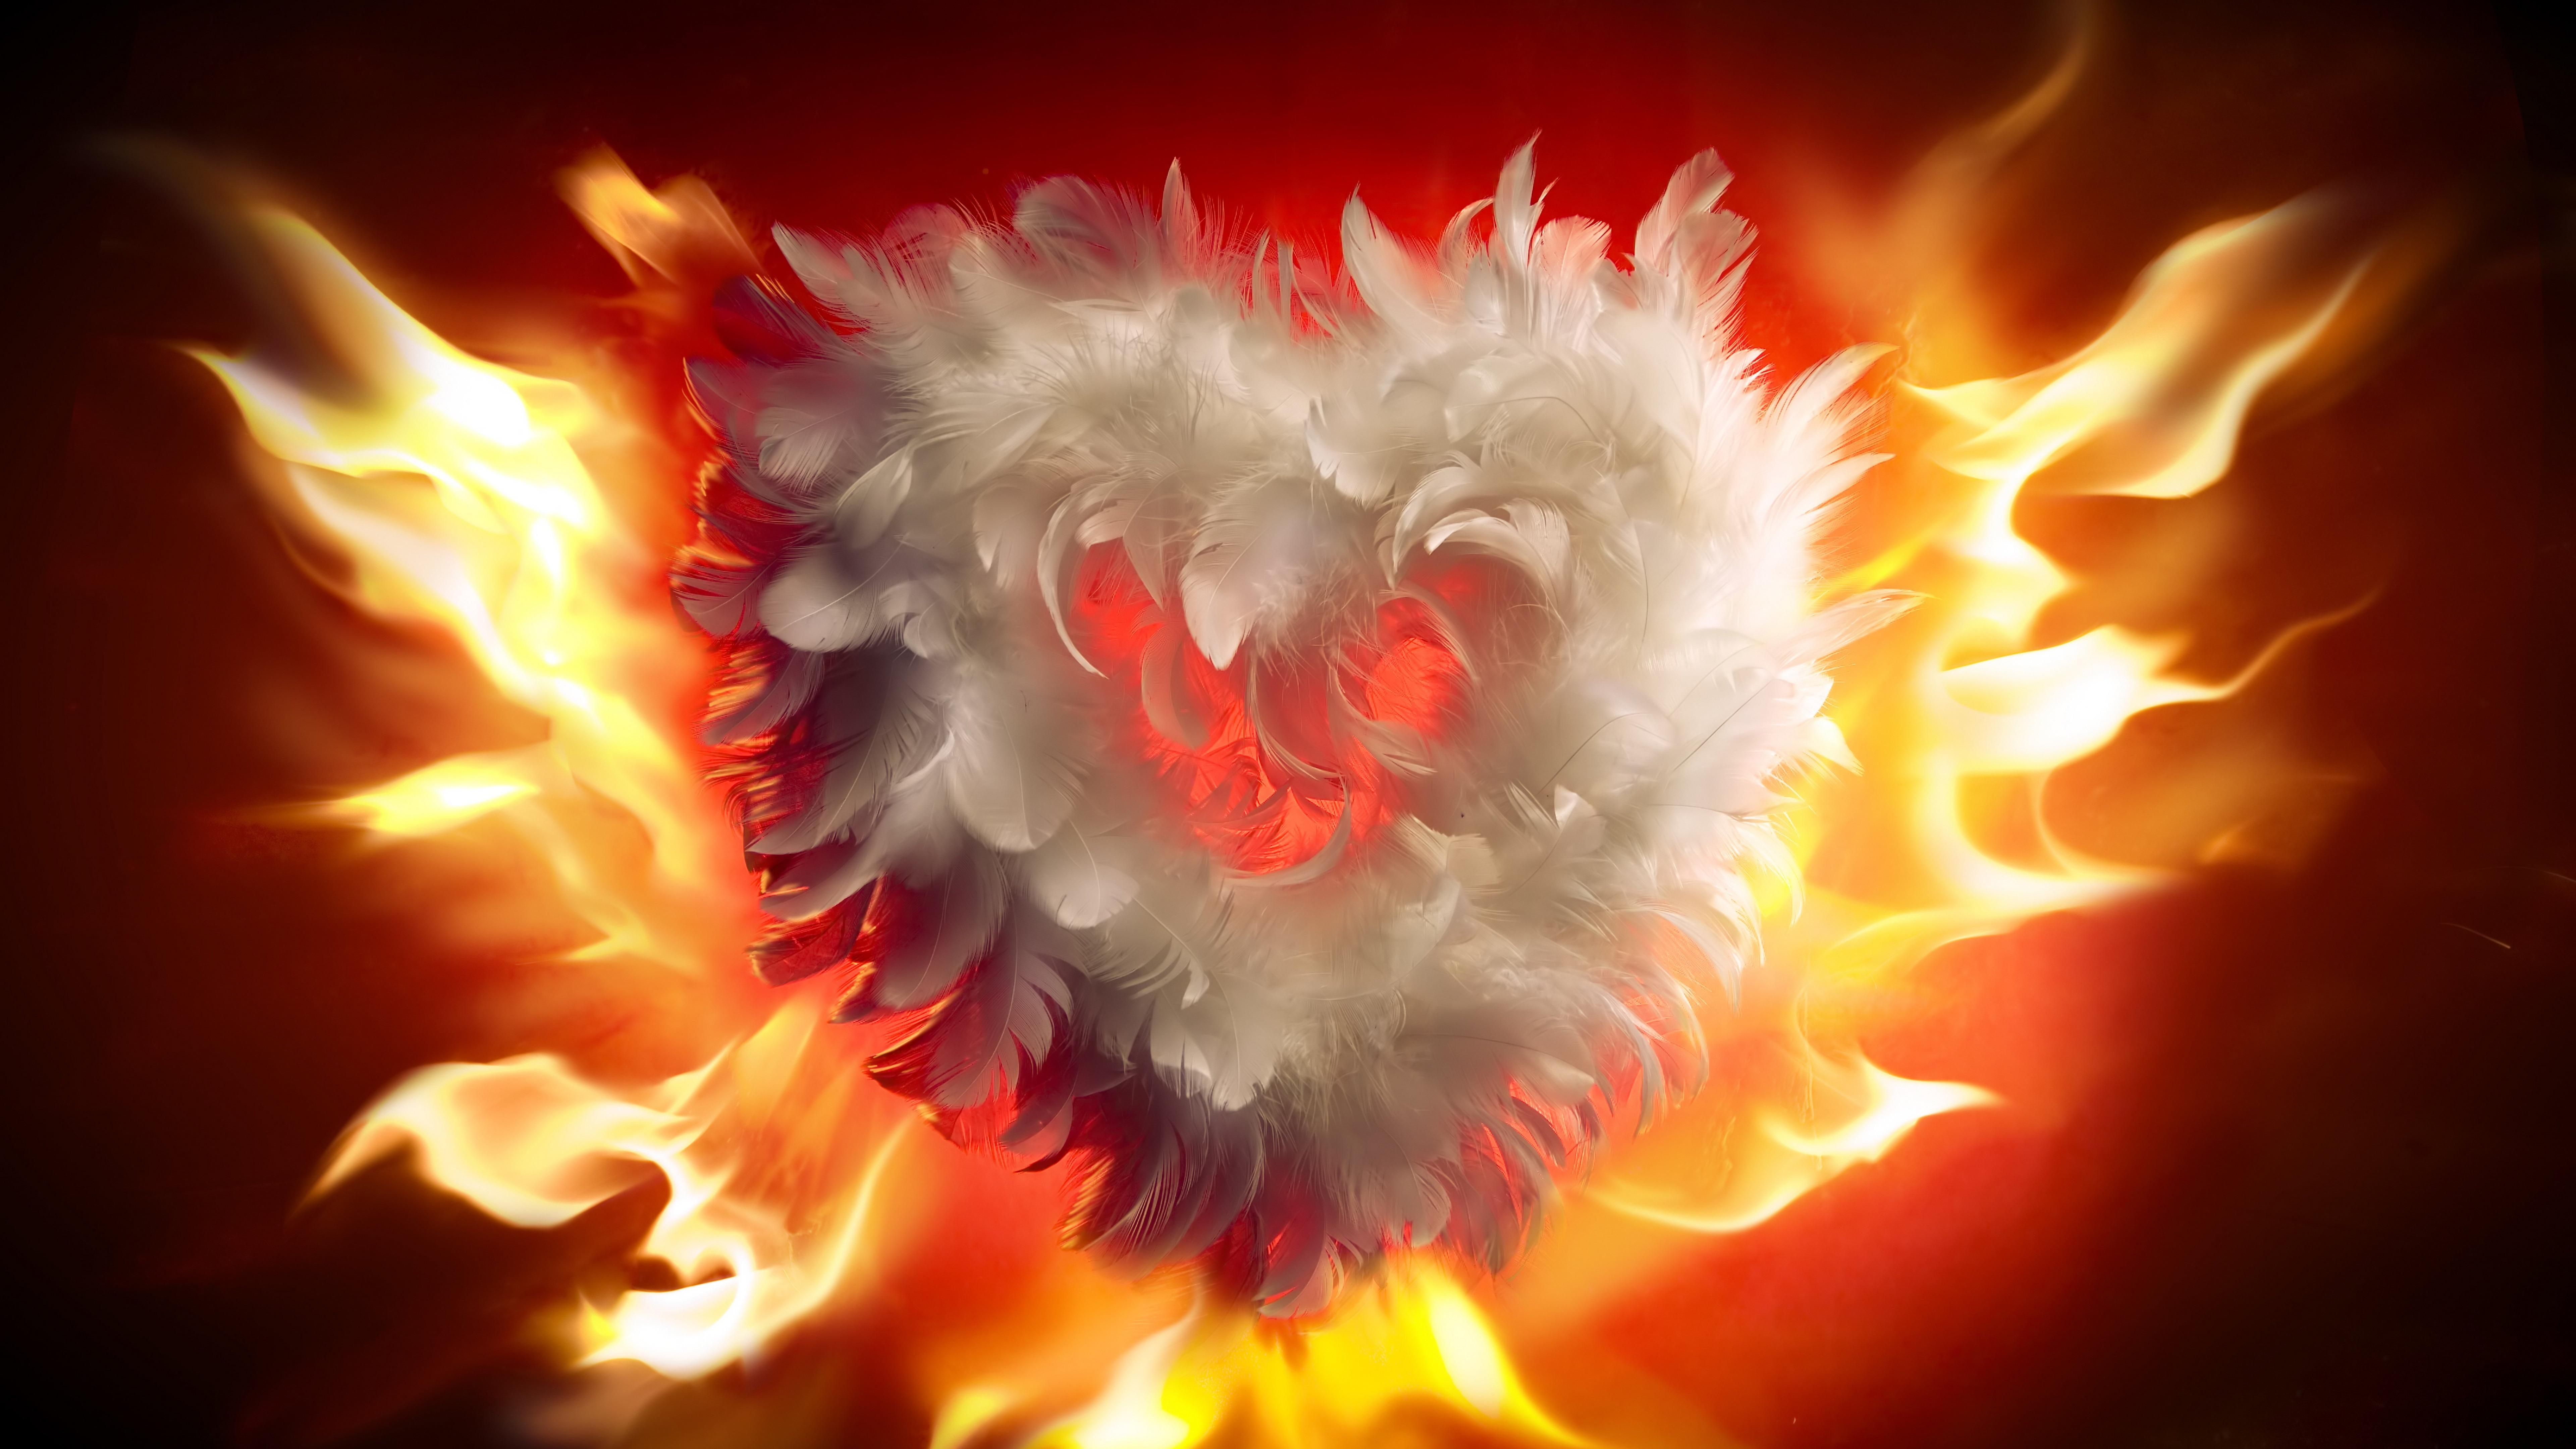 Feather heart in flames wallpaper